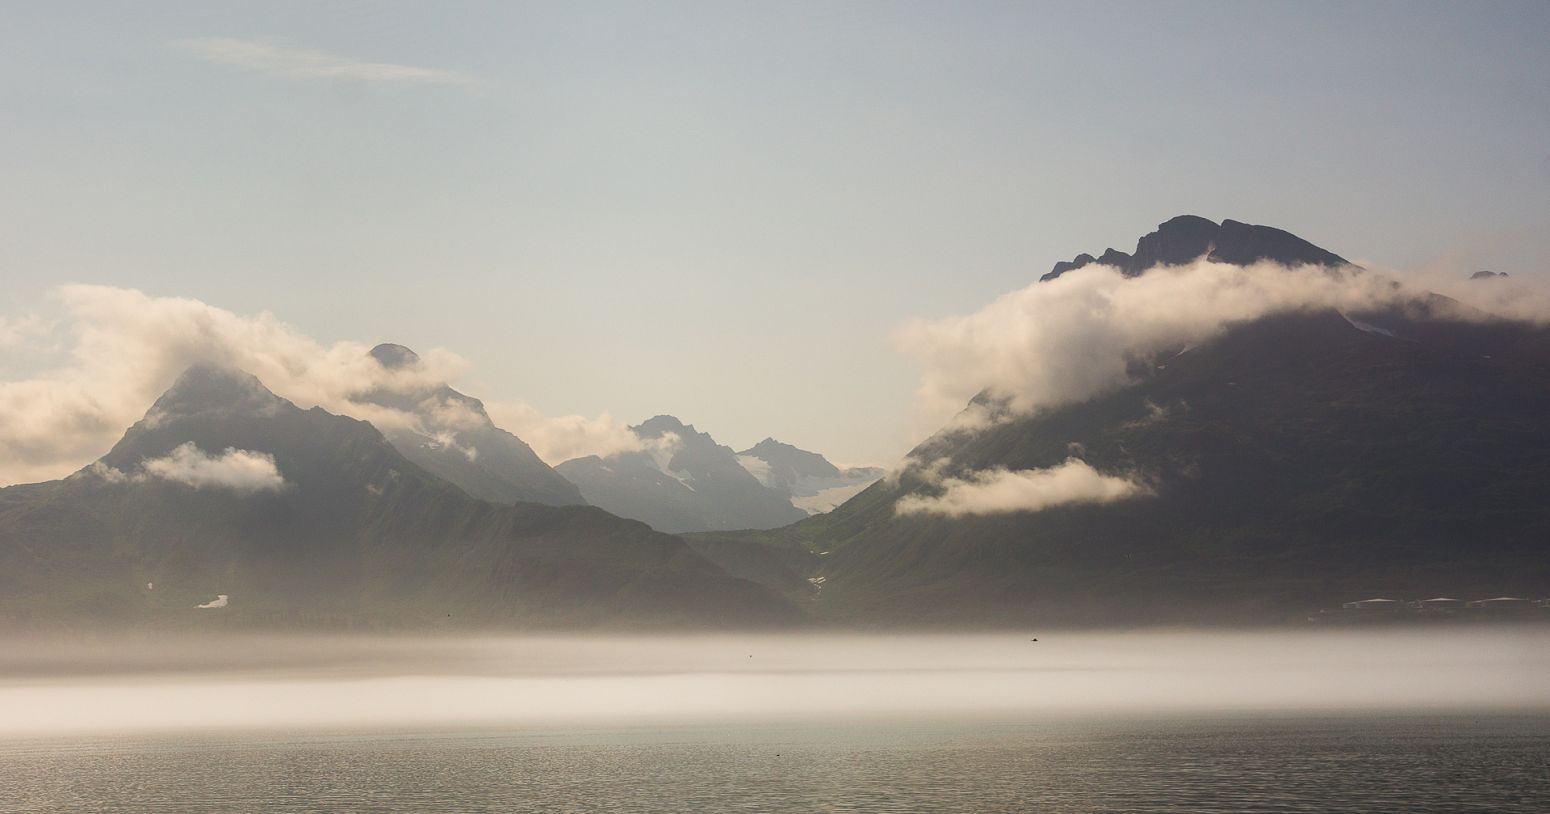 The mountains around Port Valdez, Alaska, USA